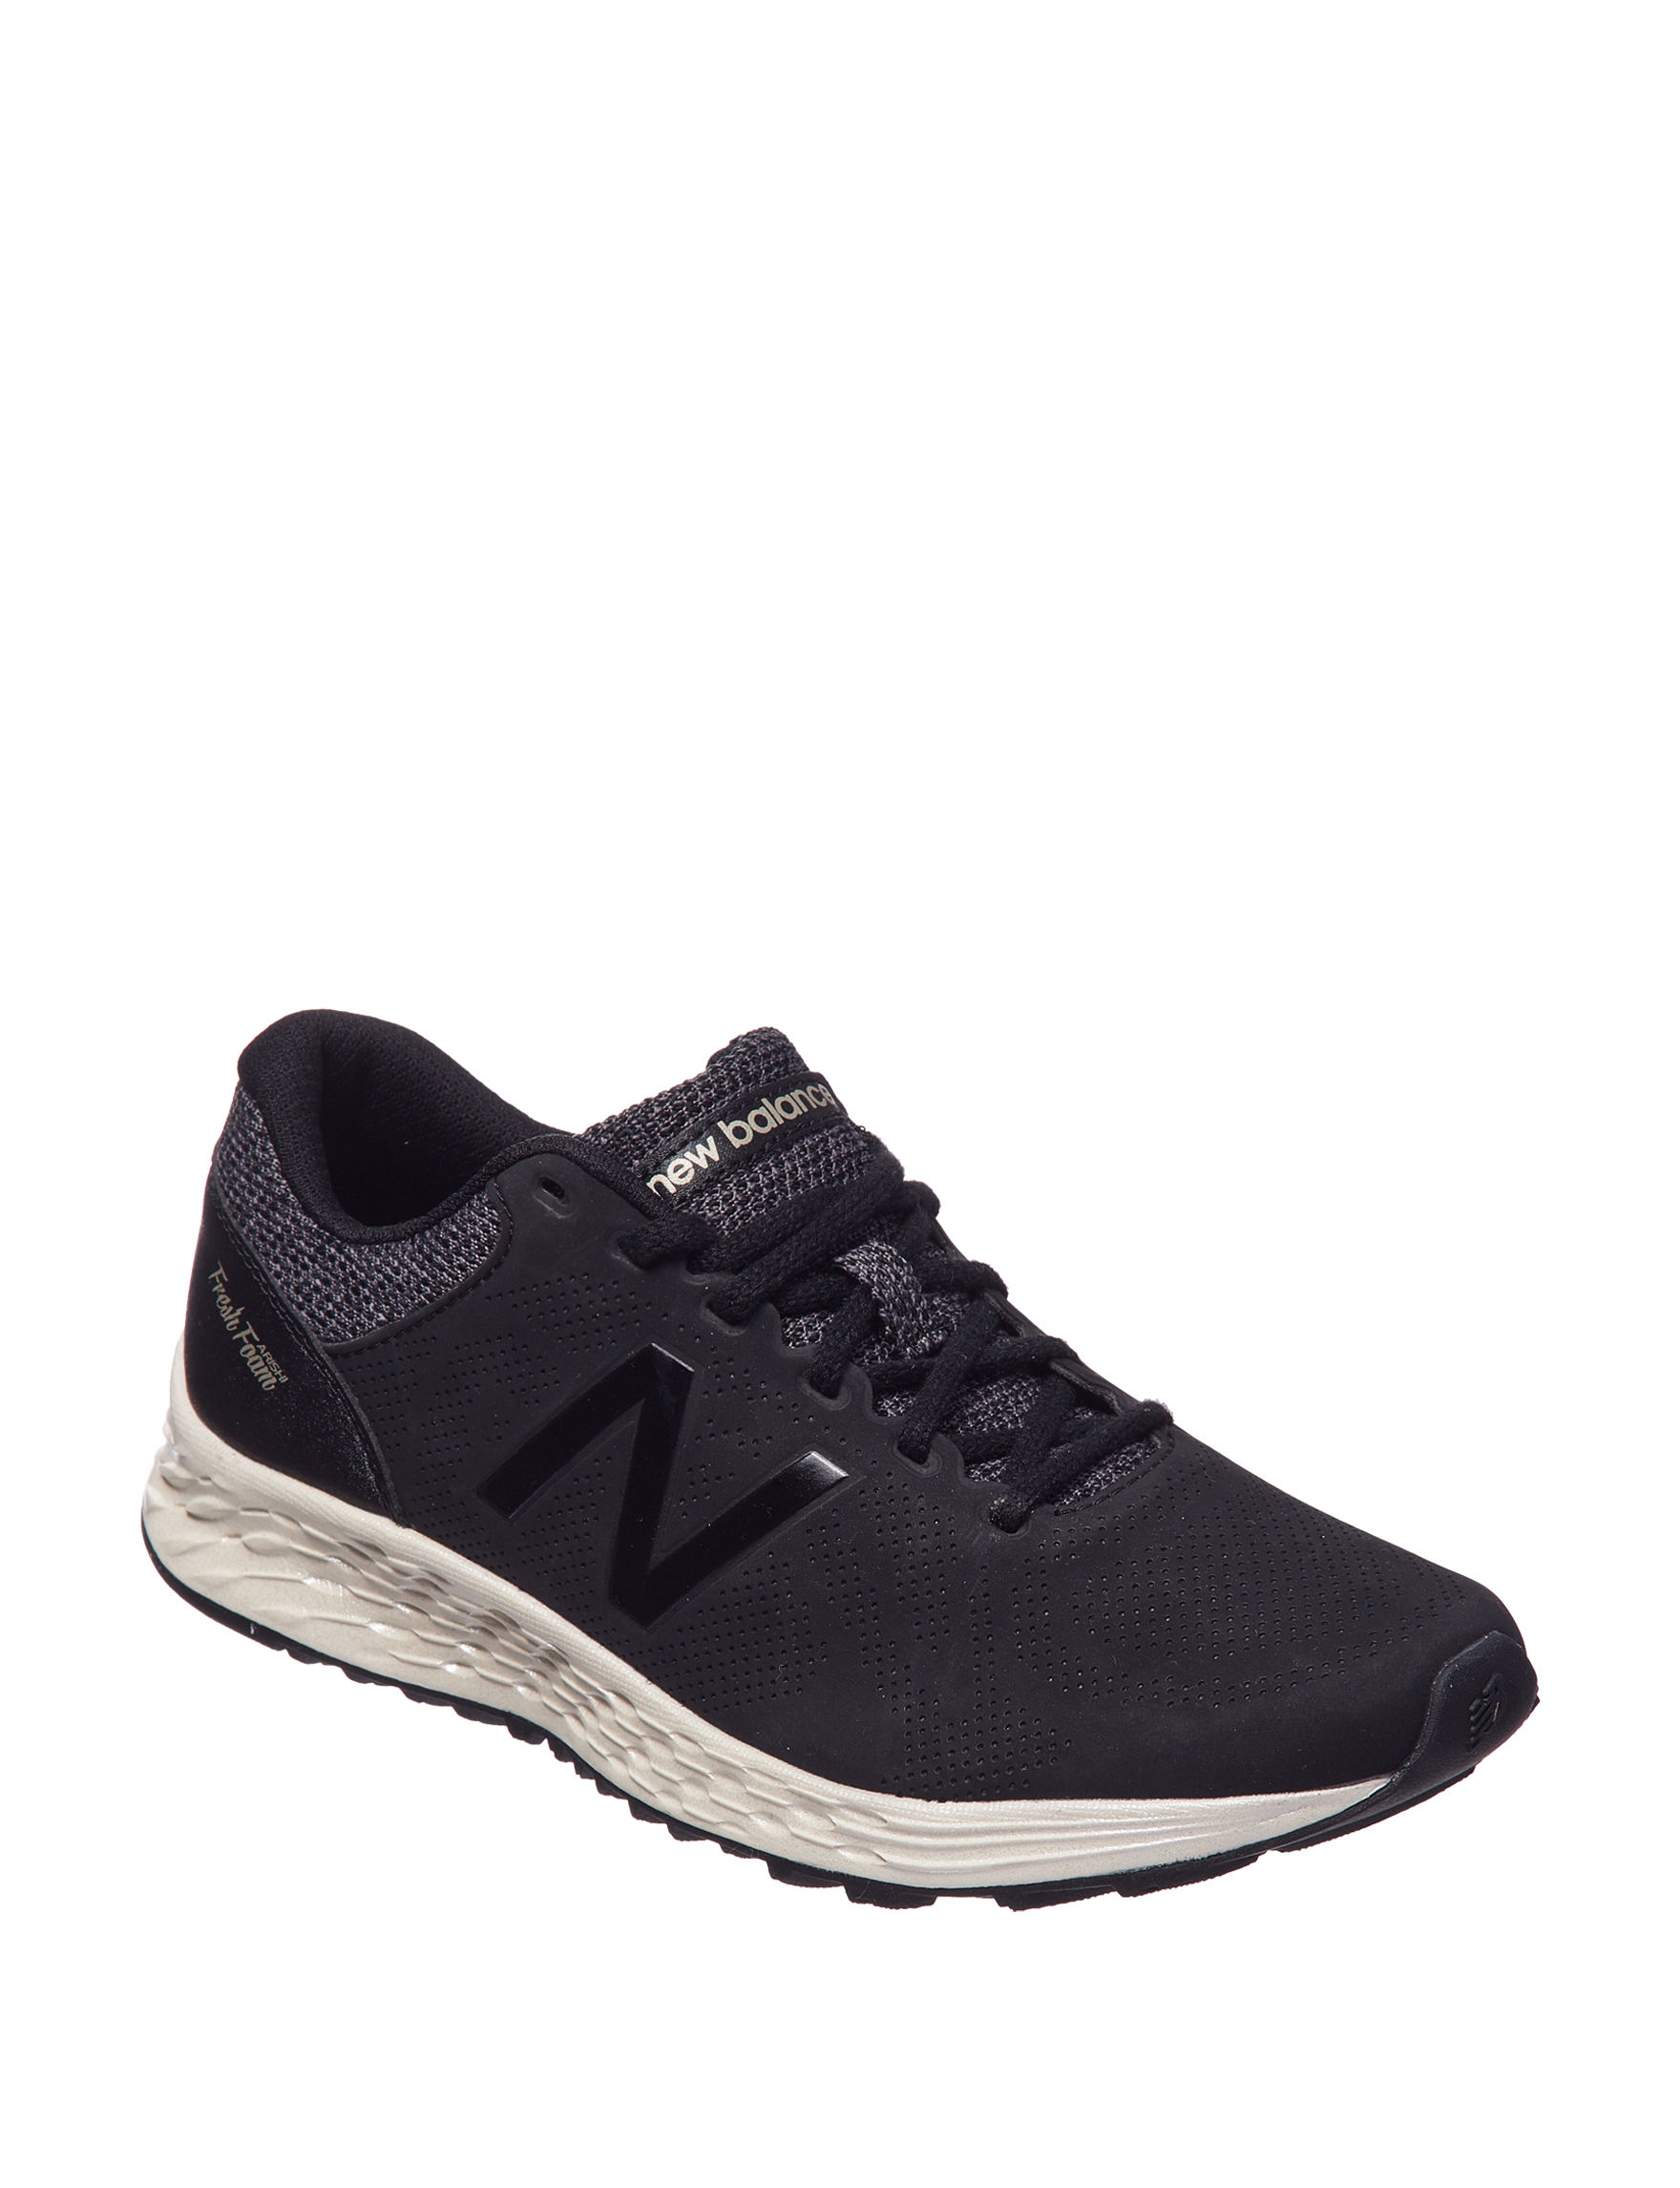 New Balance Black Comfort Shoes